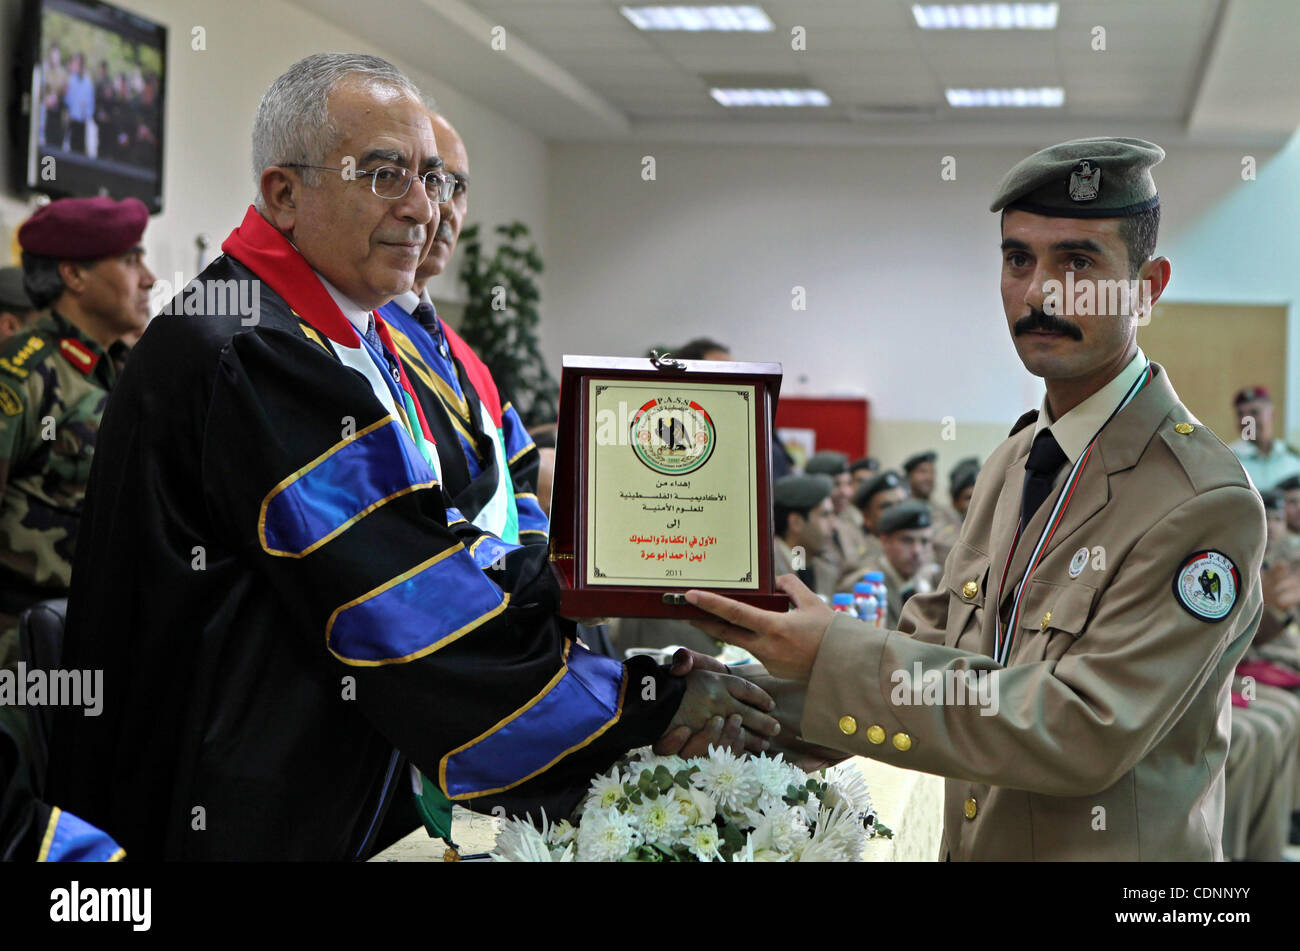 Palestinian Prime Minister, Salam Fayyad attends the graduation ceremony of the students of security, intelligence - Stock Image